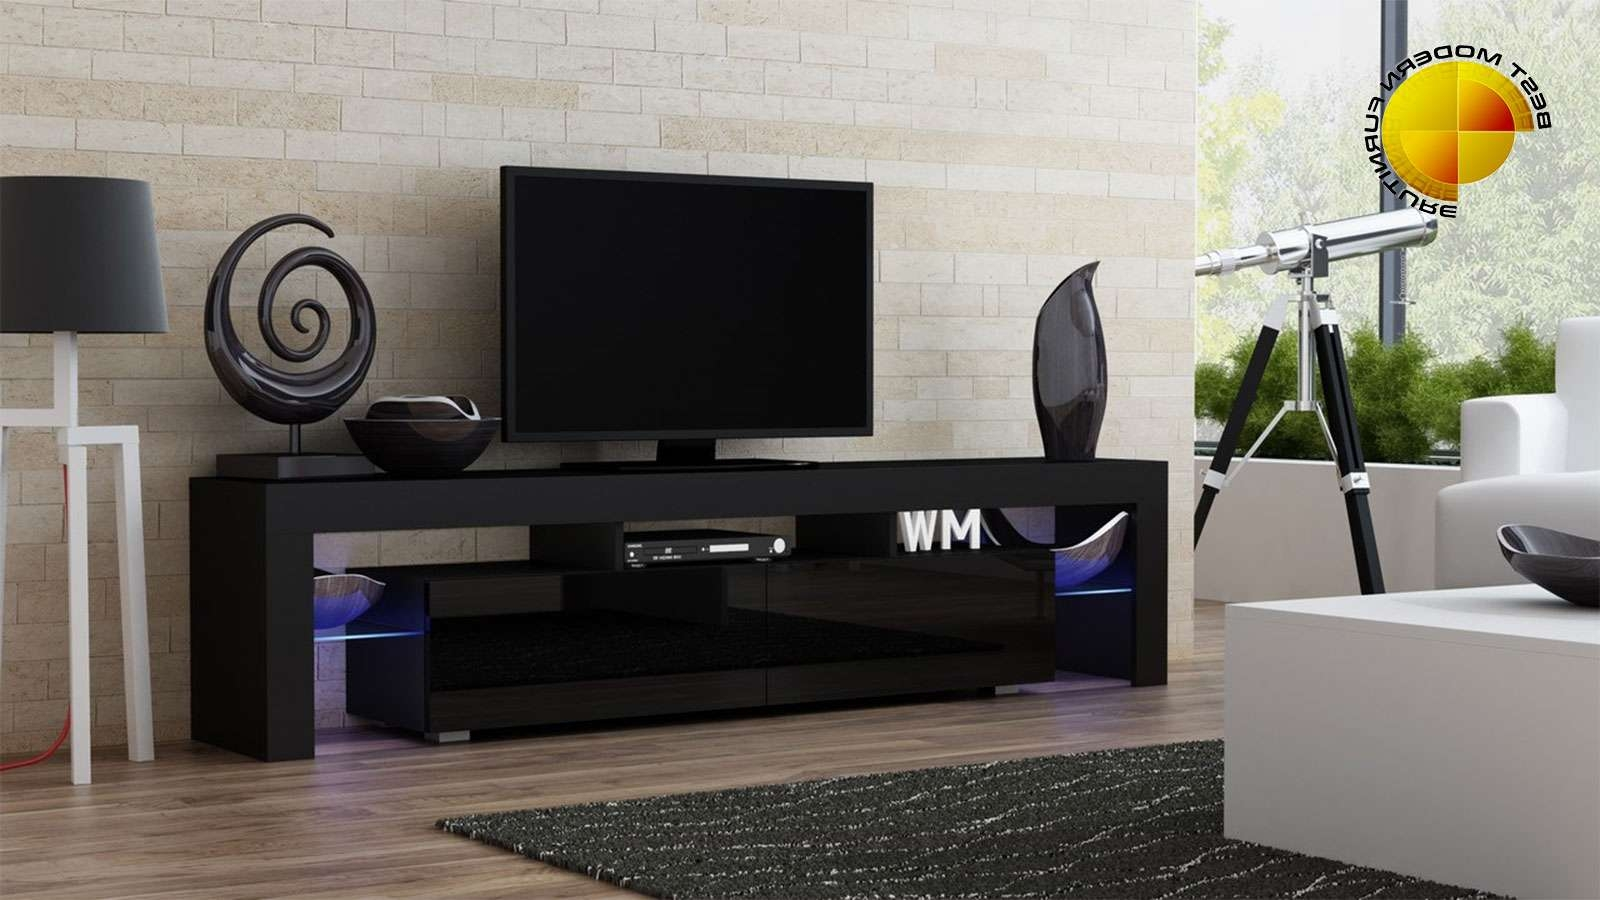 Modern Tv Stand 200cm High Gloss Cabinet Rgb Led Lights Black Unit Intended For Gloss Tv Stands (View 11 of 15)